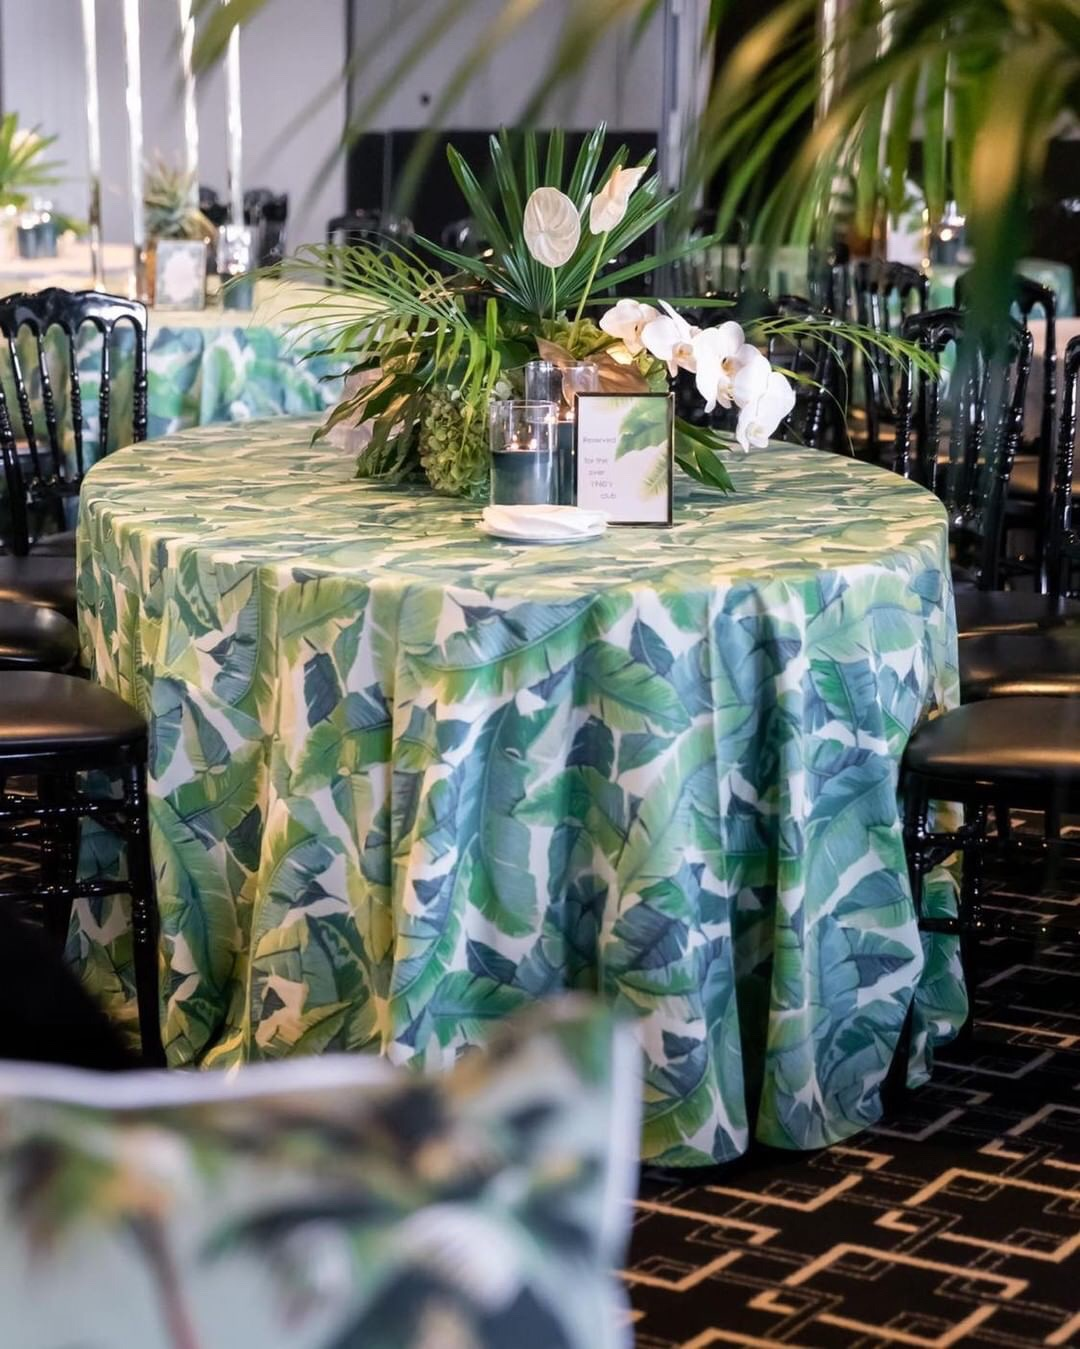 Hire_Palm_spring_luxury_linen_sydney_wedding_event_palm_centrepeices.JPG